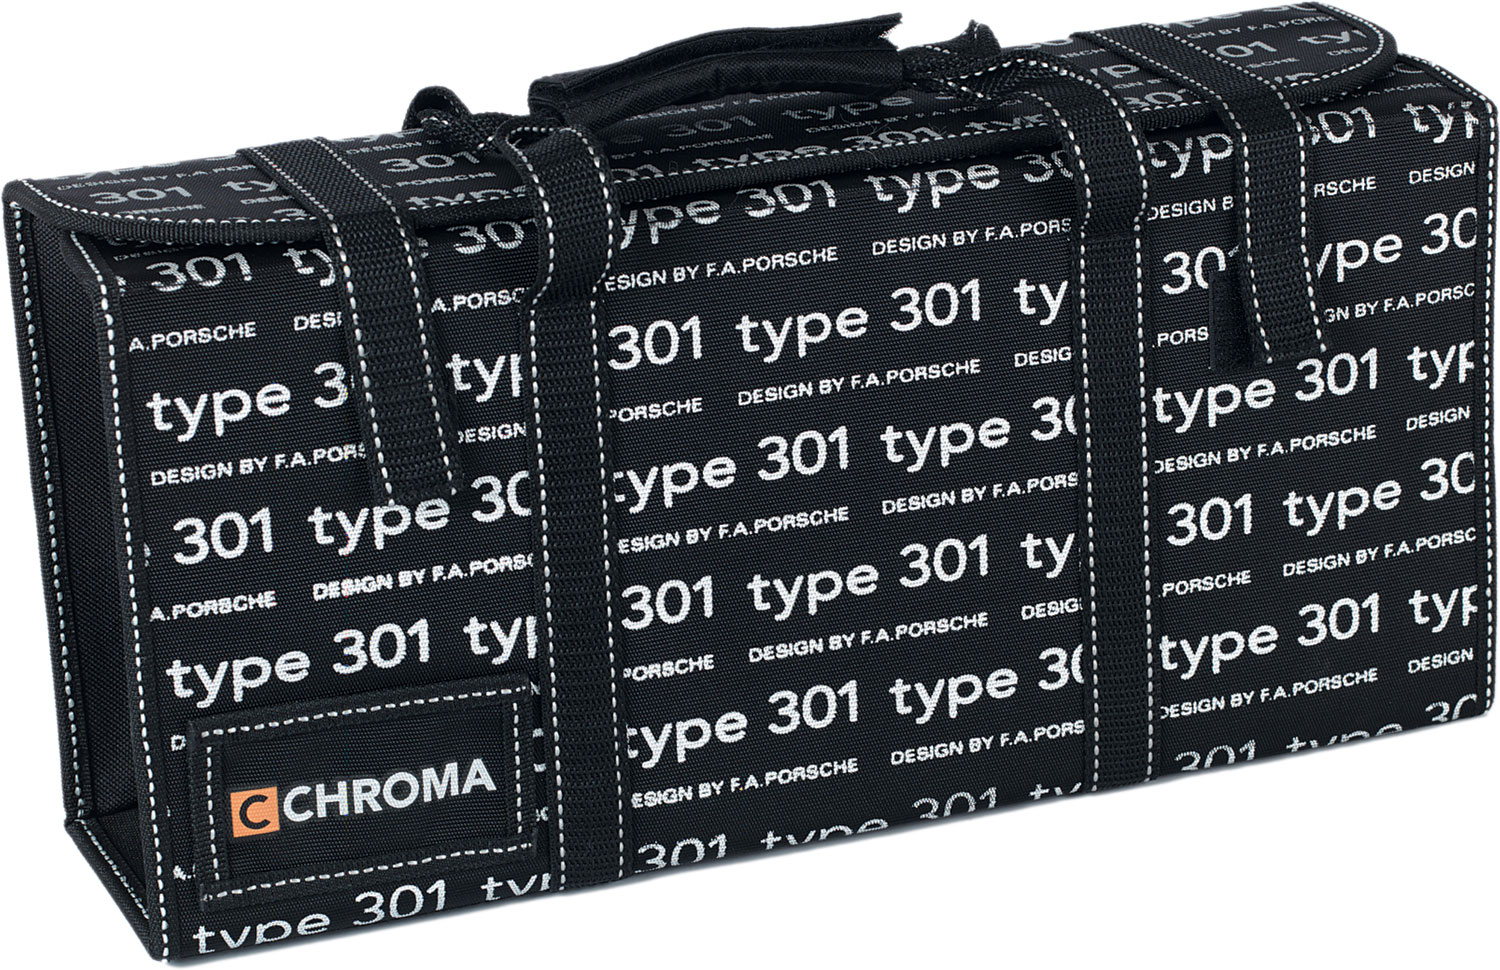 Chroma Cutlery F.A. Porsche Type 301 Chef's Knife Bag, Japanese 301 Stainless Steel